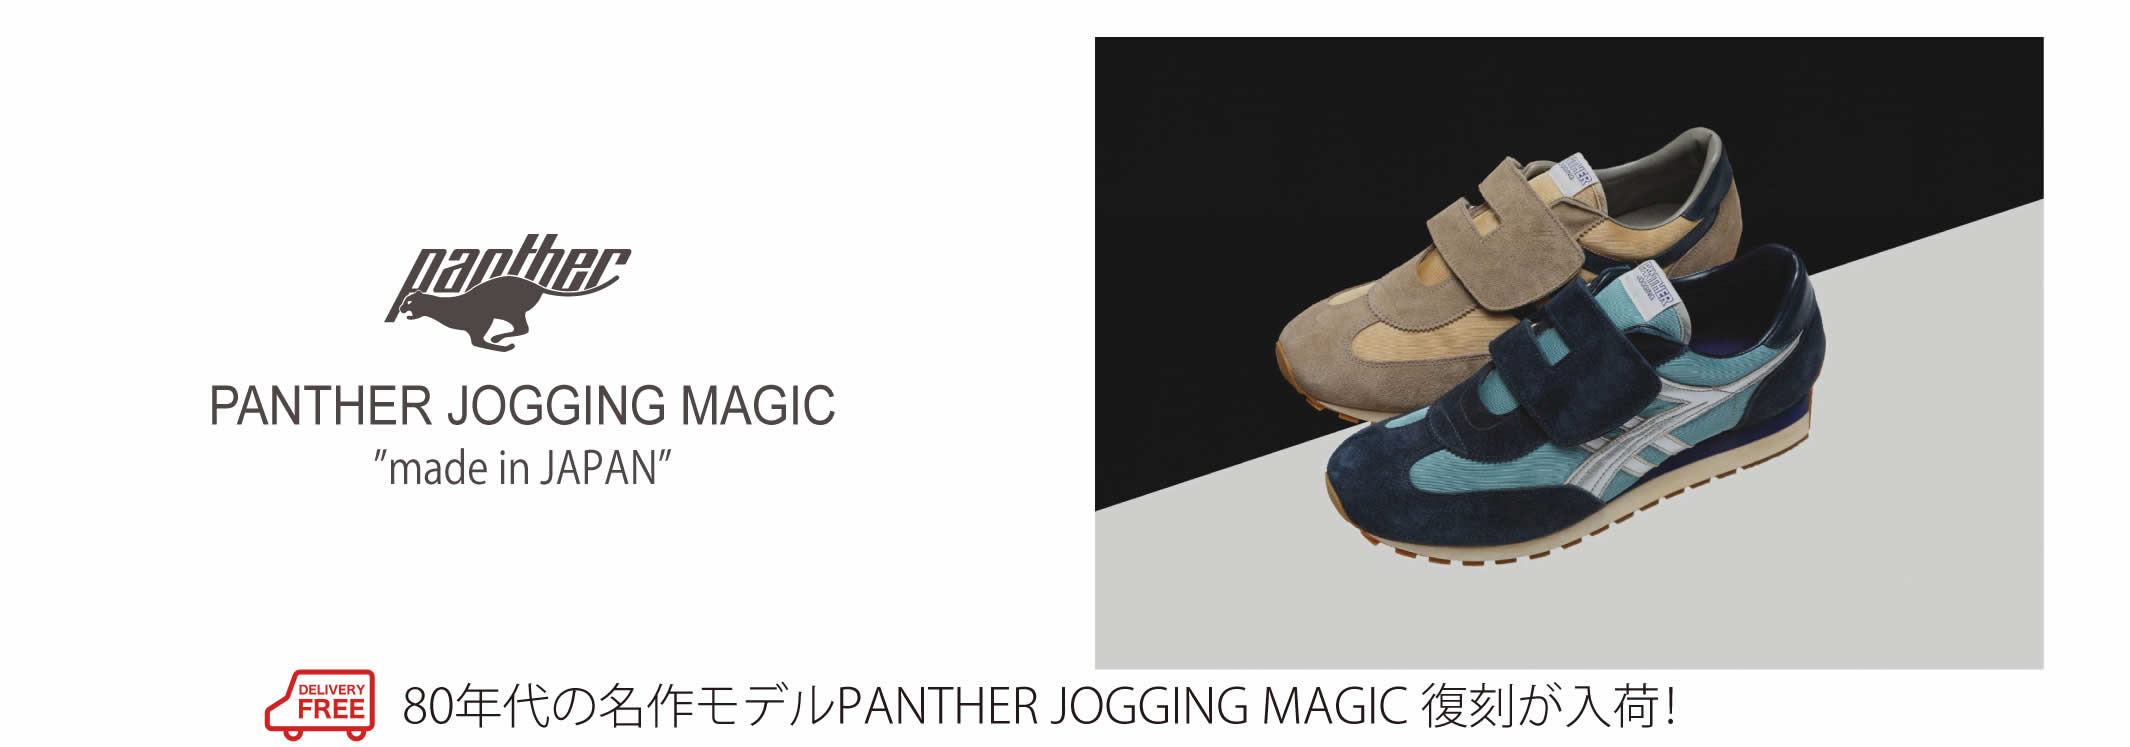 07-panter-jogging-magic-4